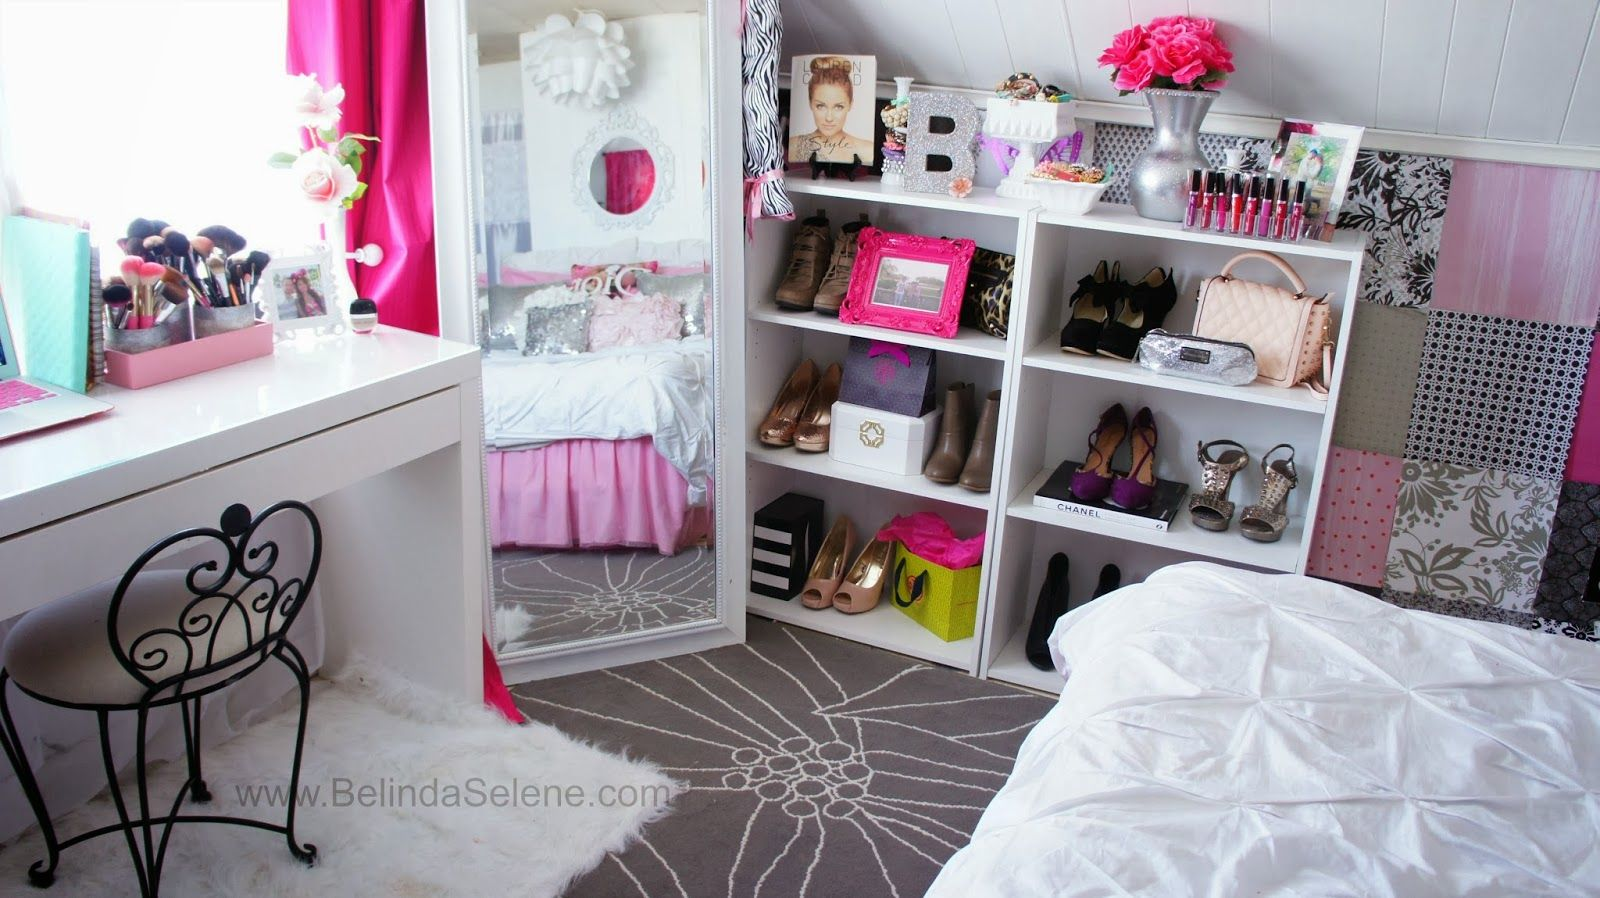 Decoration Girly Makeup Room